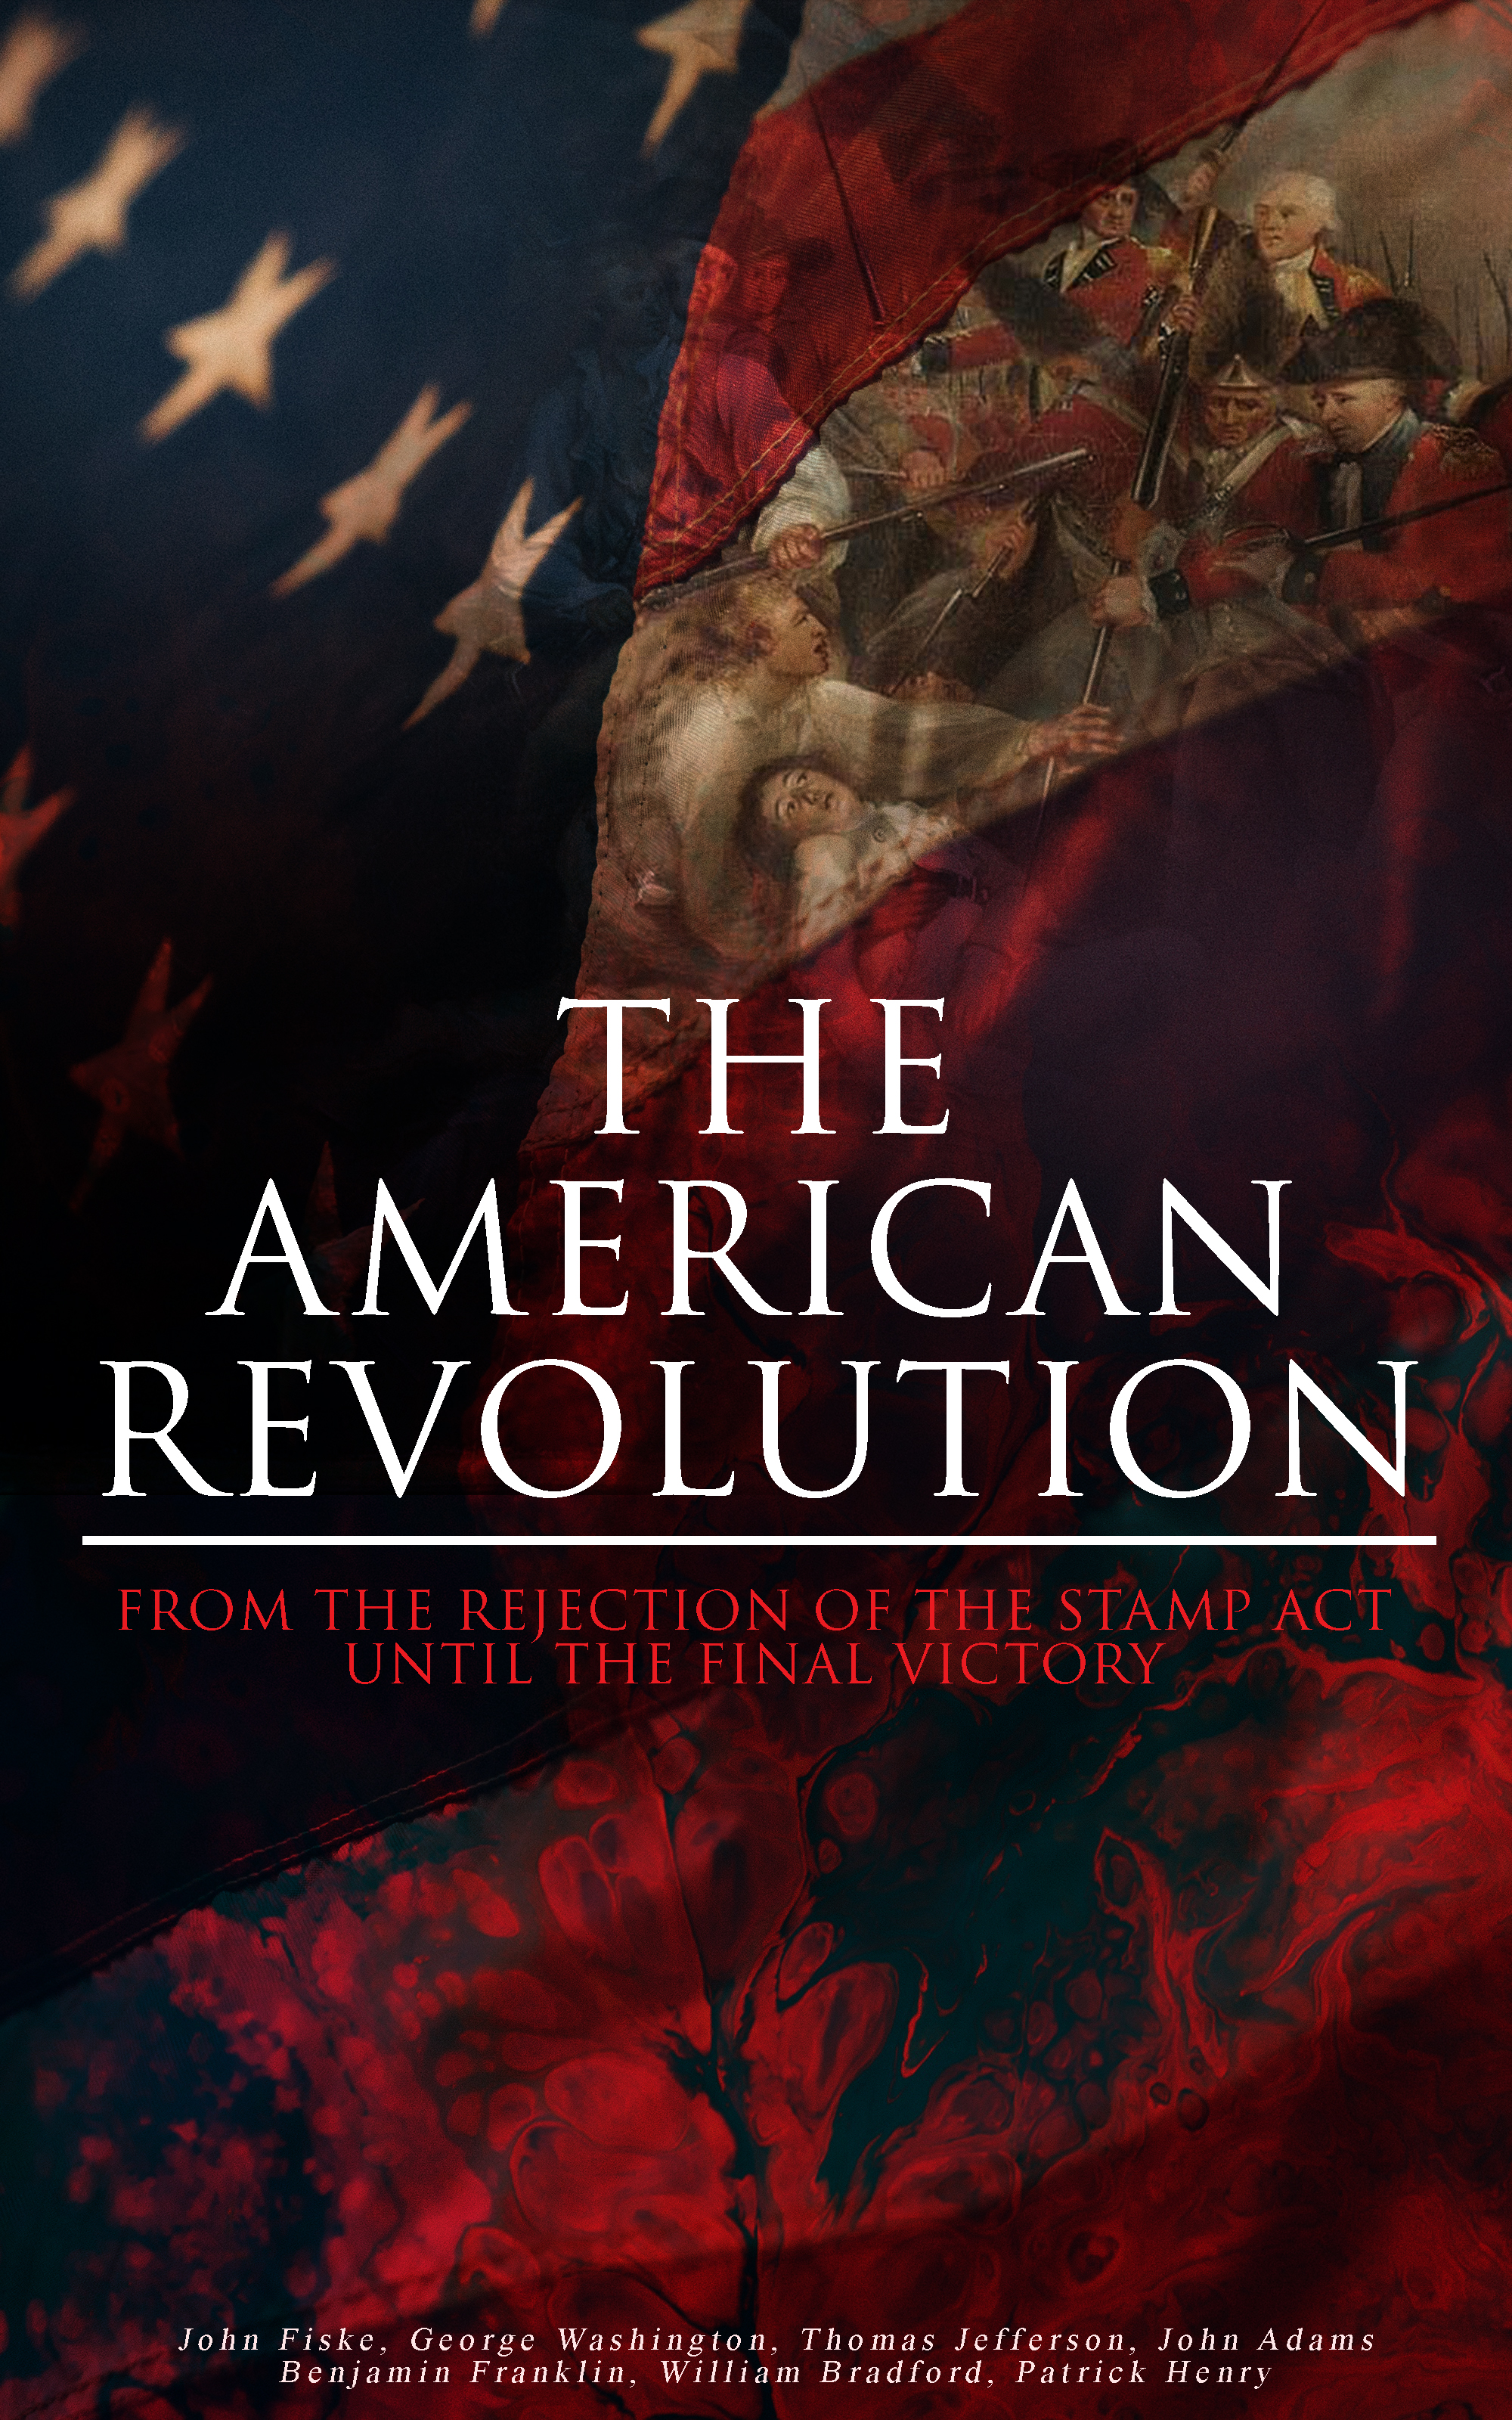 the american revolution from the rejection of the stamp act until the final victory